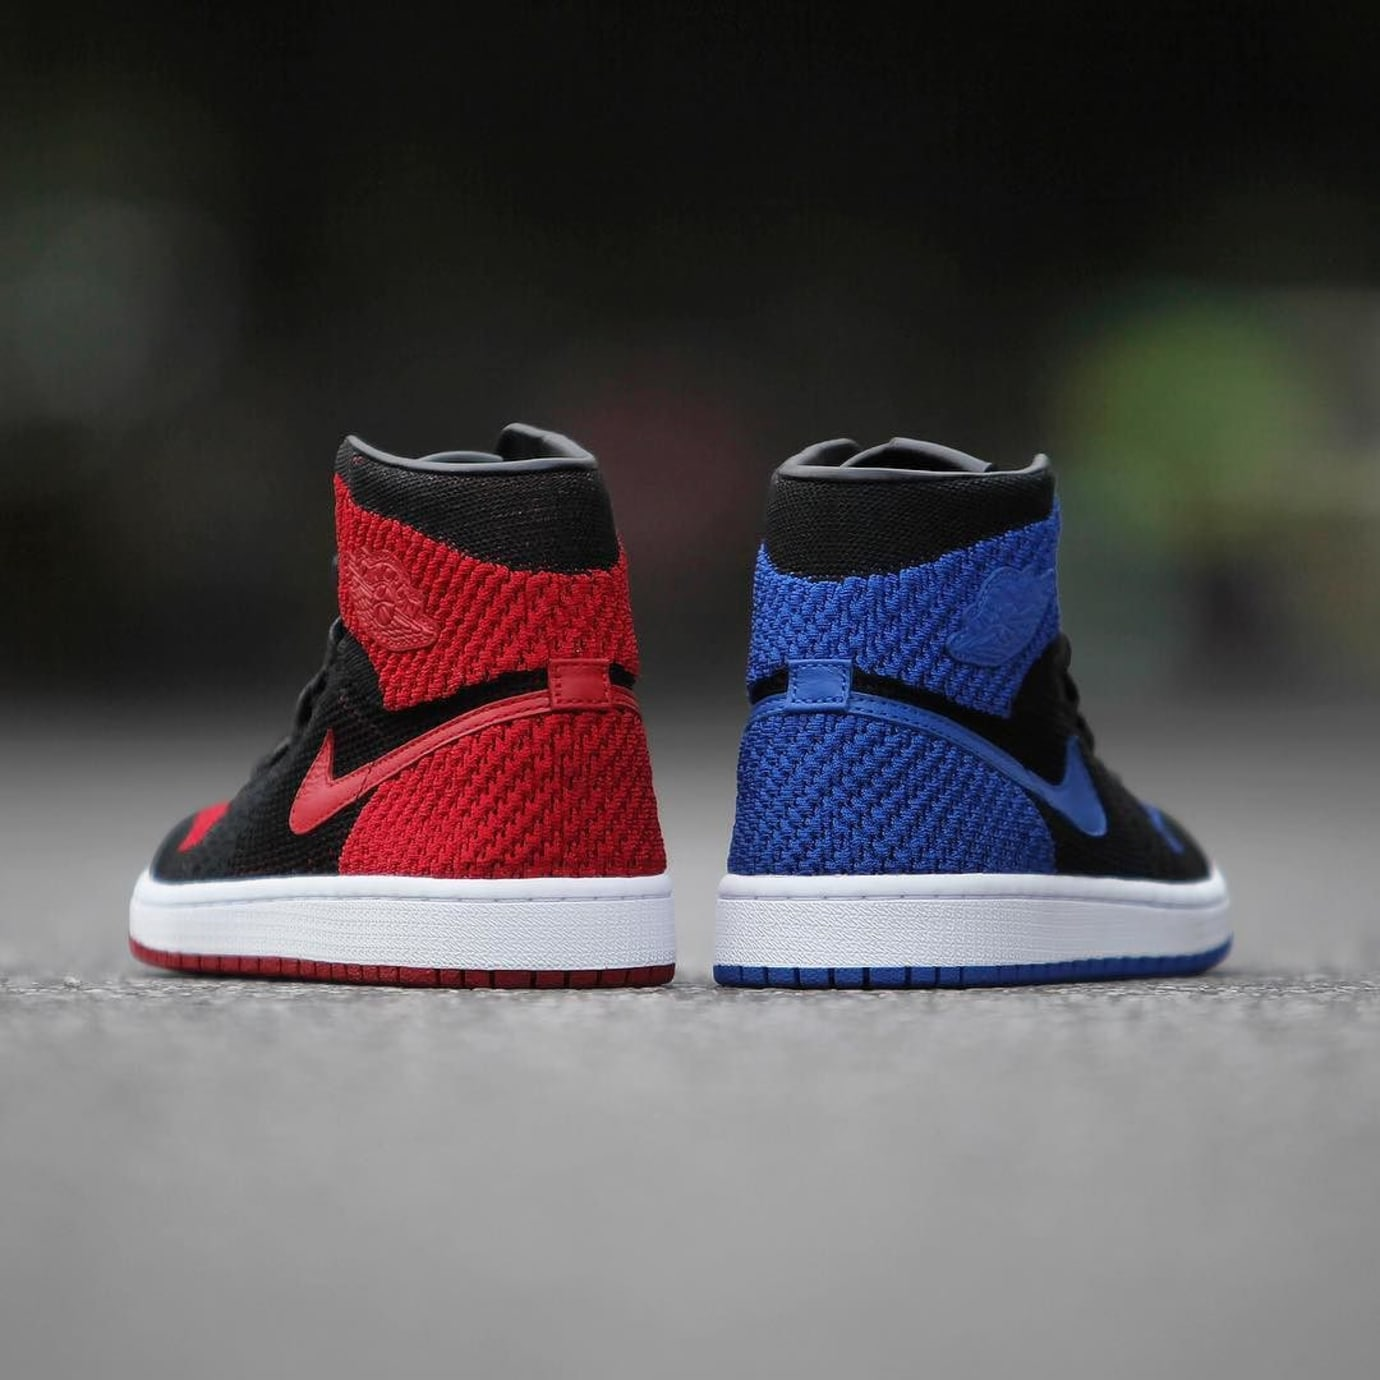 Air Jordan 1 Flyknit Royal Release Date 919704-006 (20)